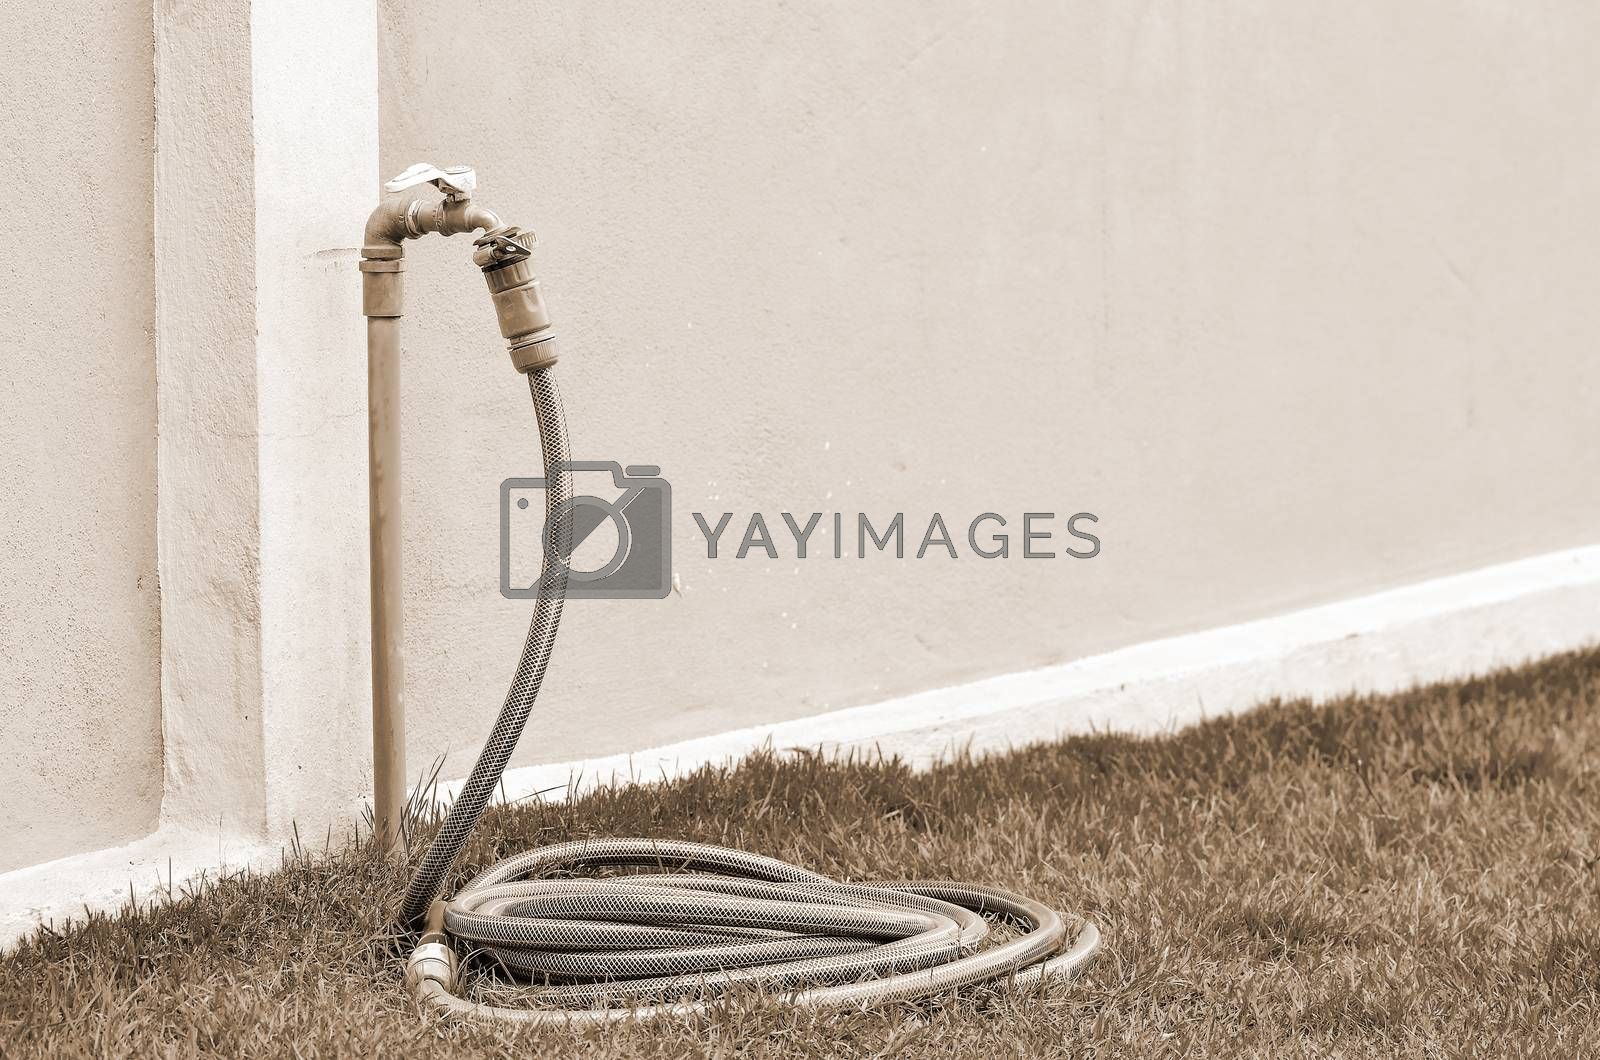 Royalty free image of Reel of hose pipe and spraying head by raweenuttapong